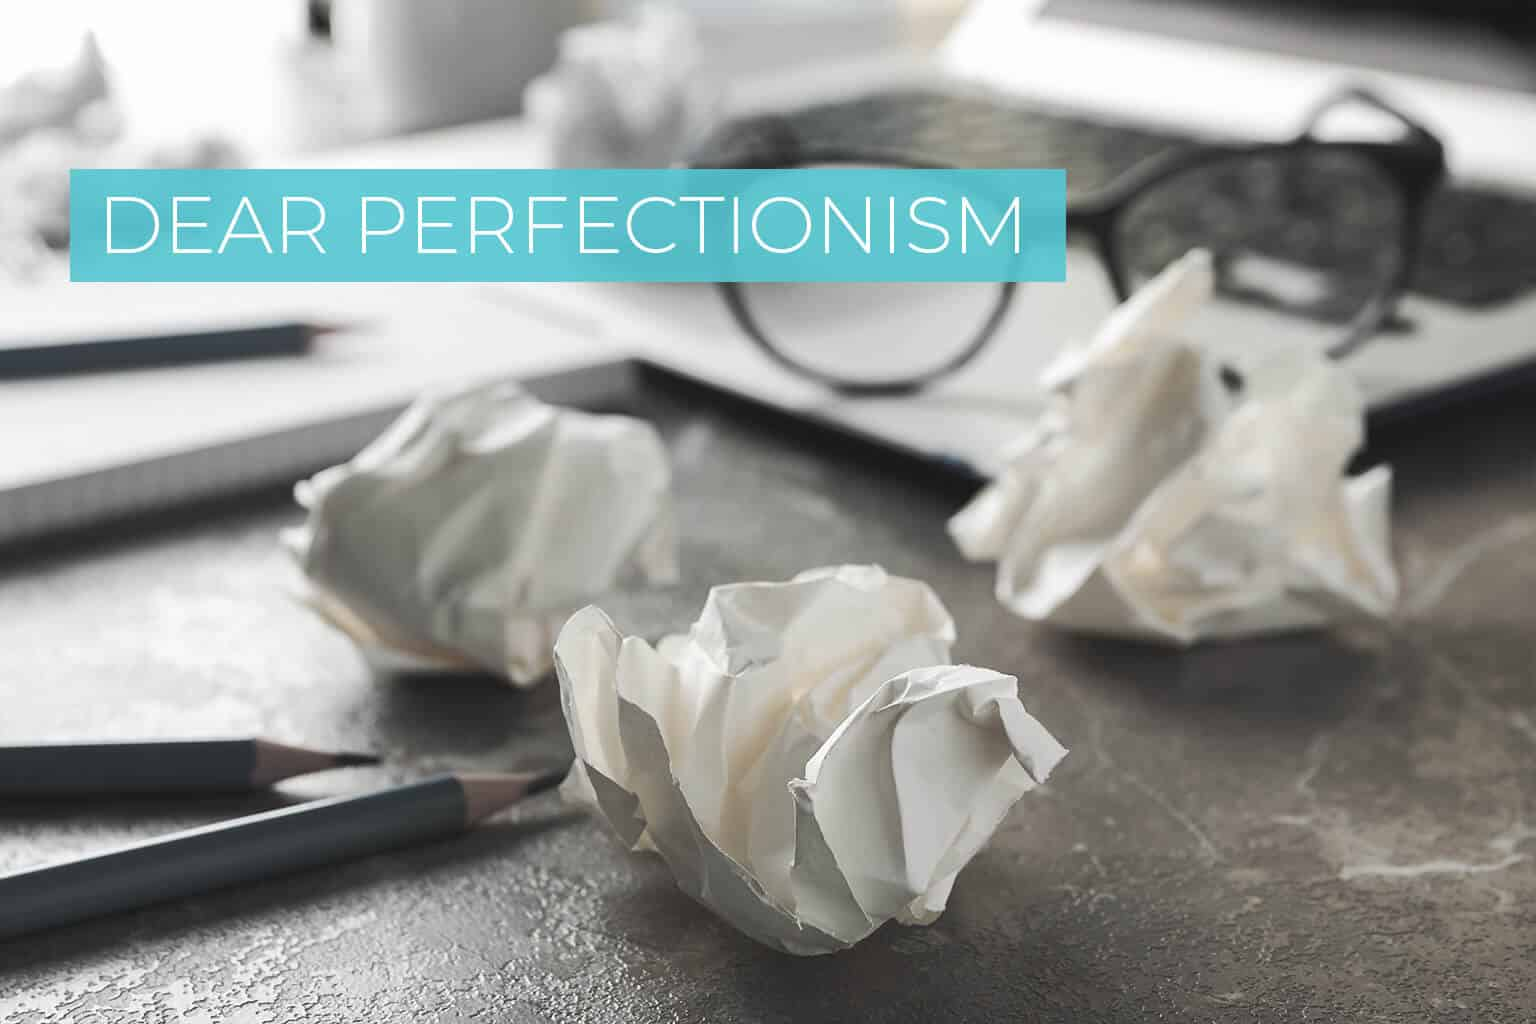 Confessions of a perfectionist